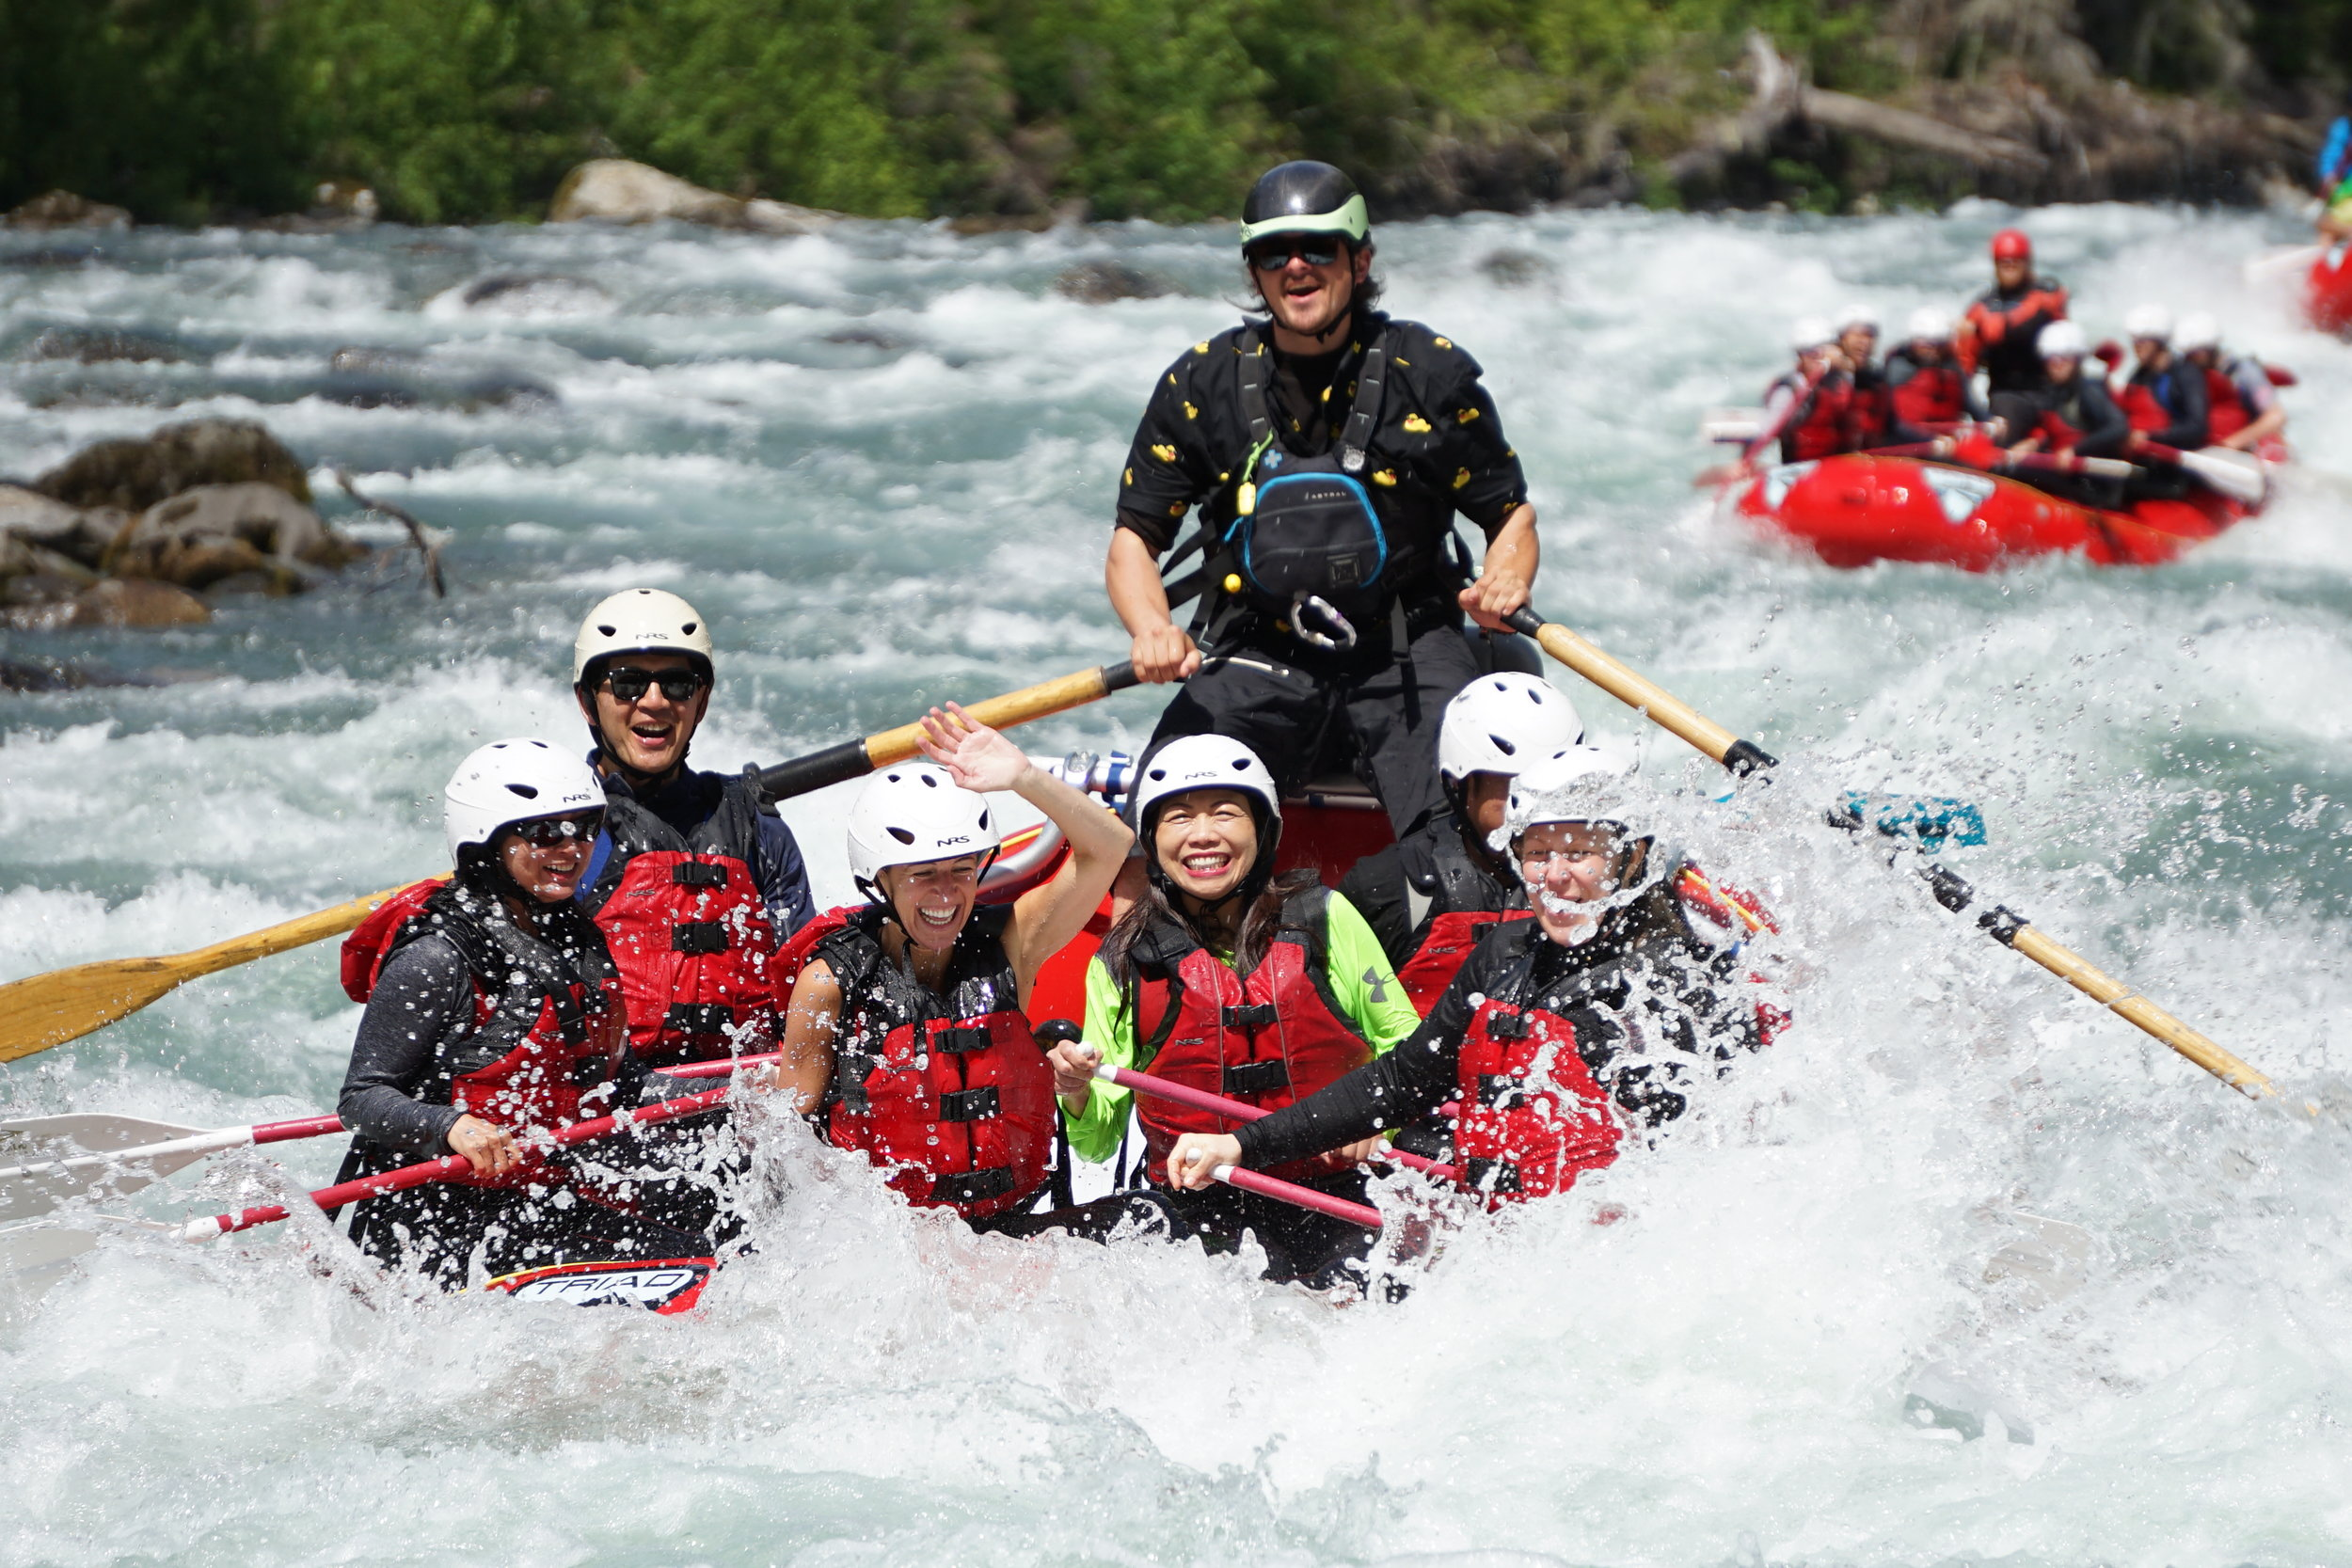 rafting near everett wa.JPG